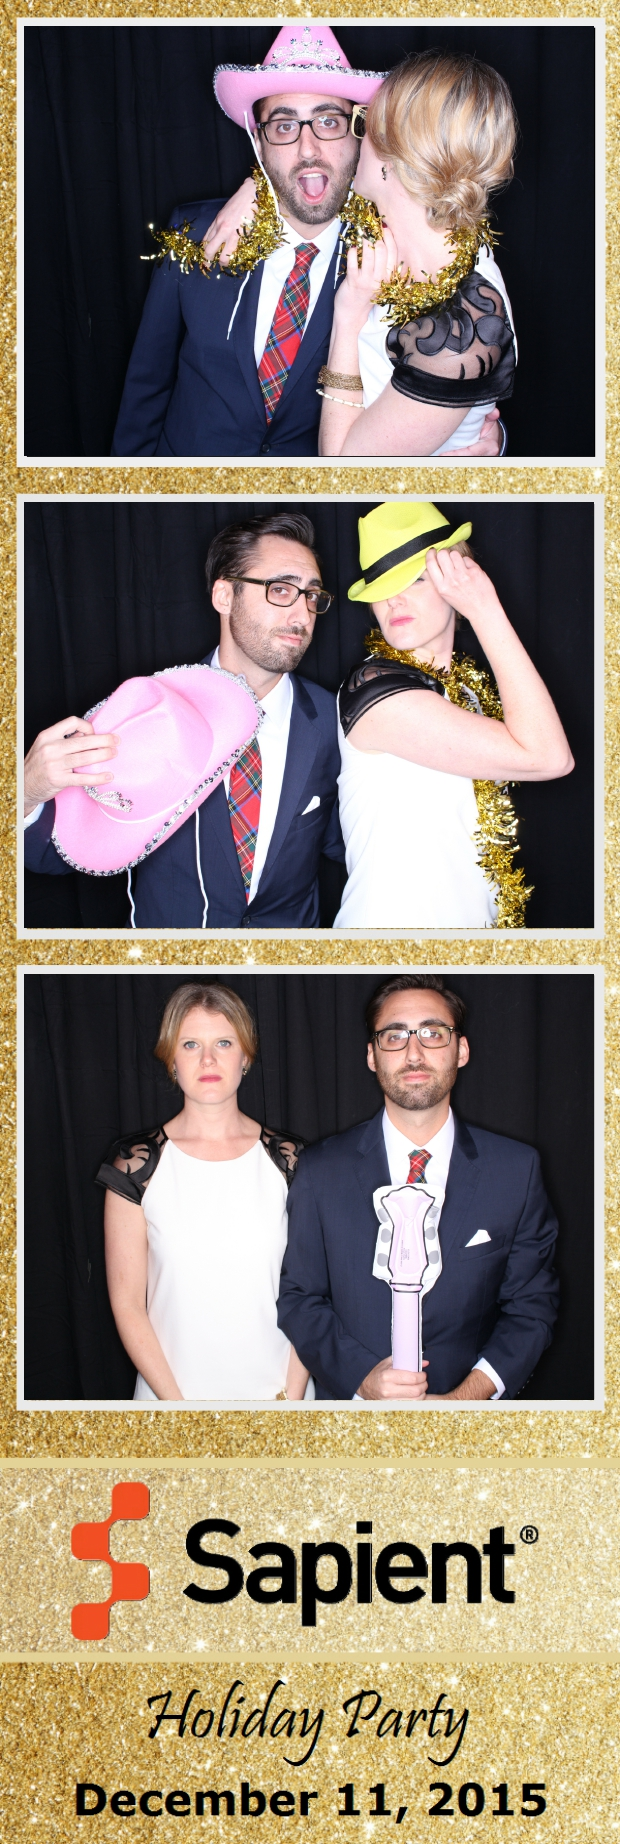 Guest House Events Photo Booth Sapient Holiday Party (48).jpg